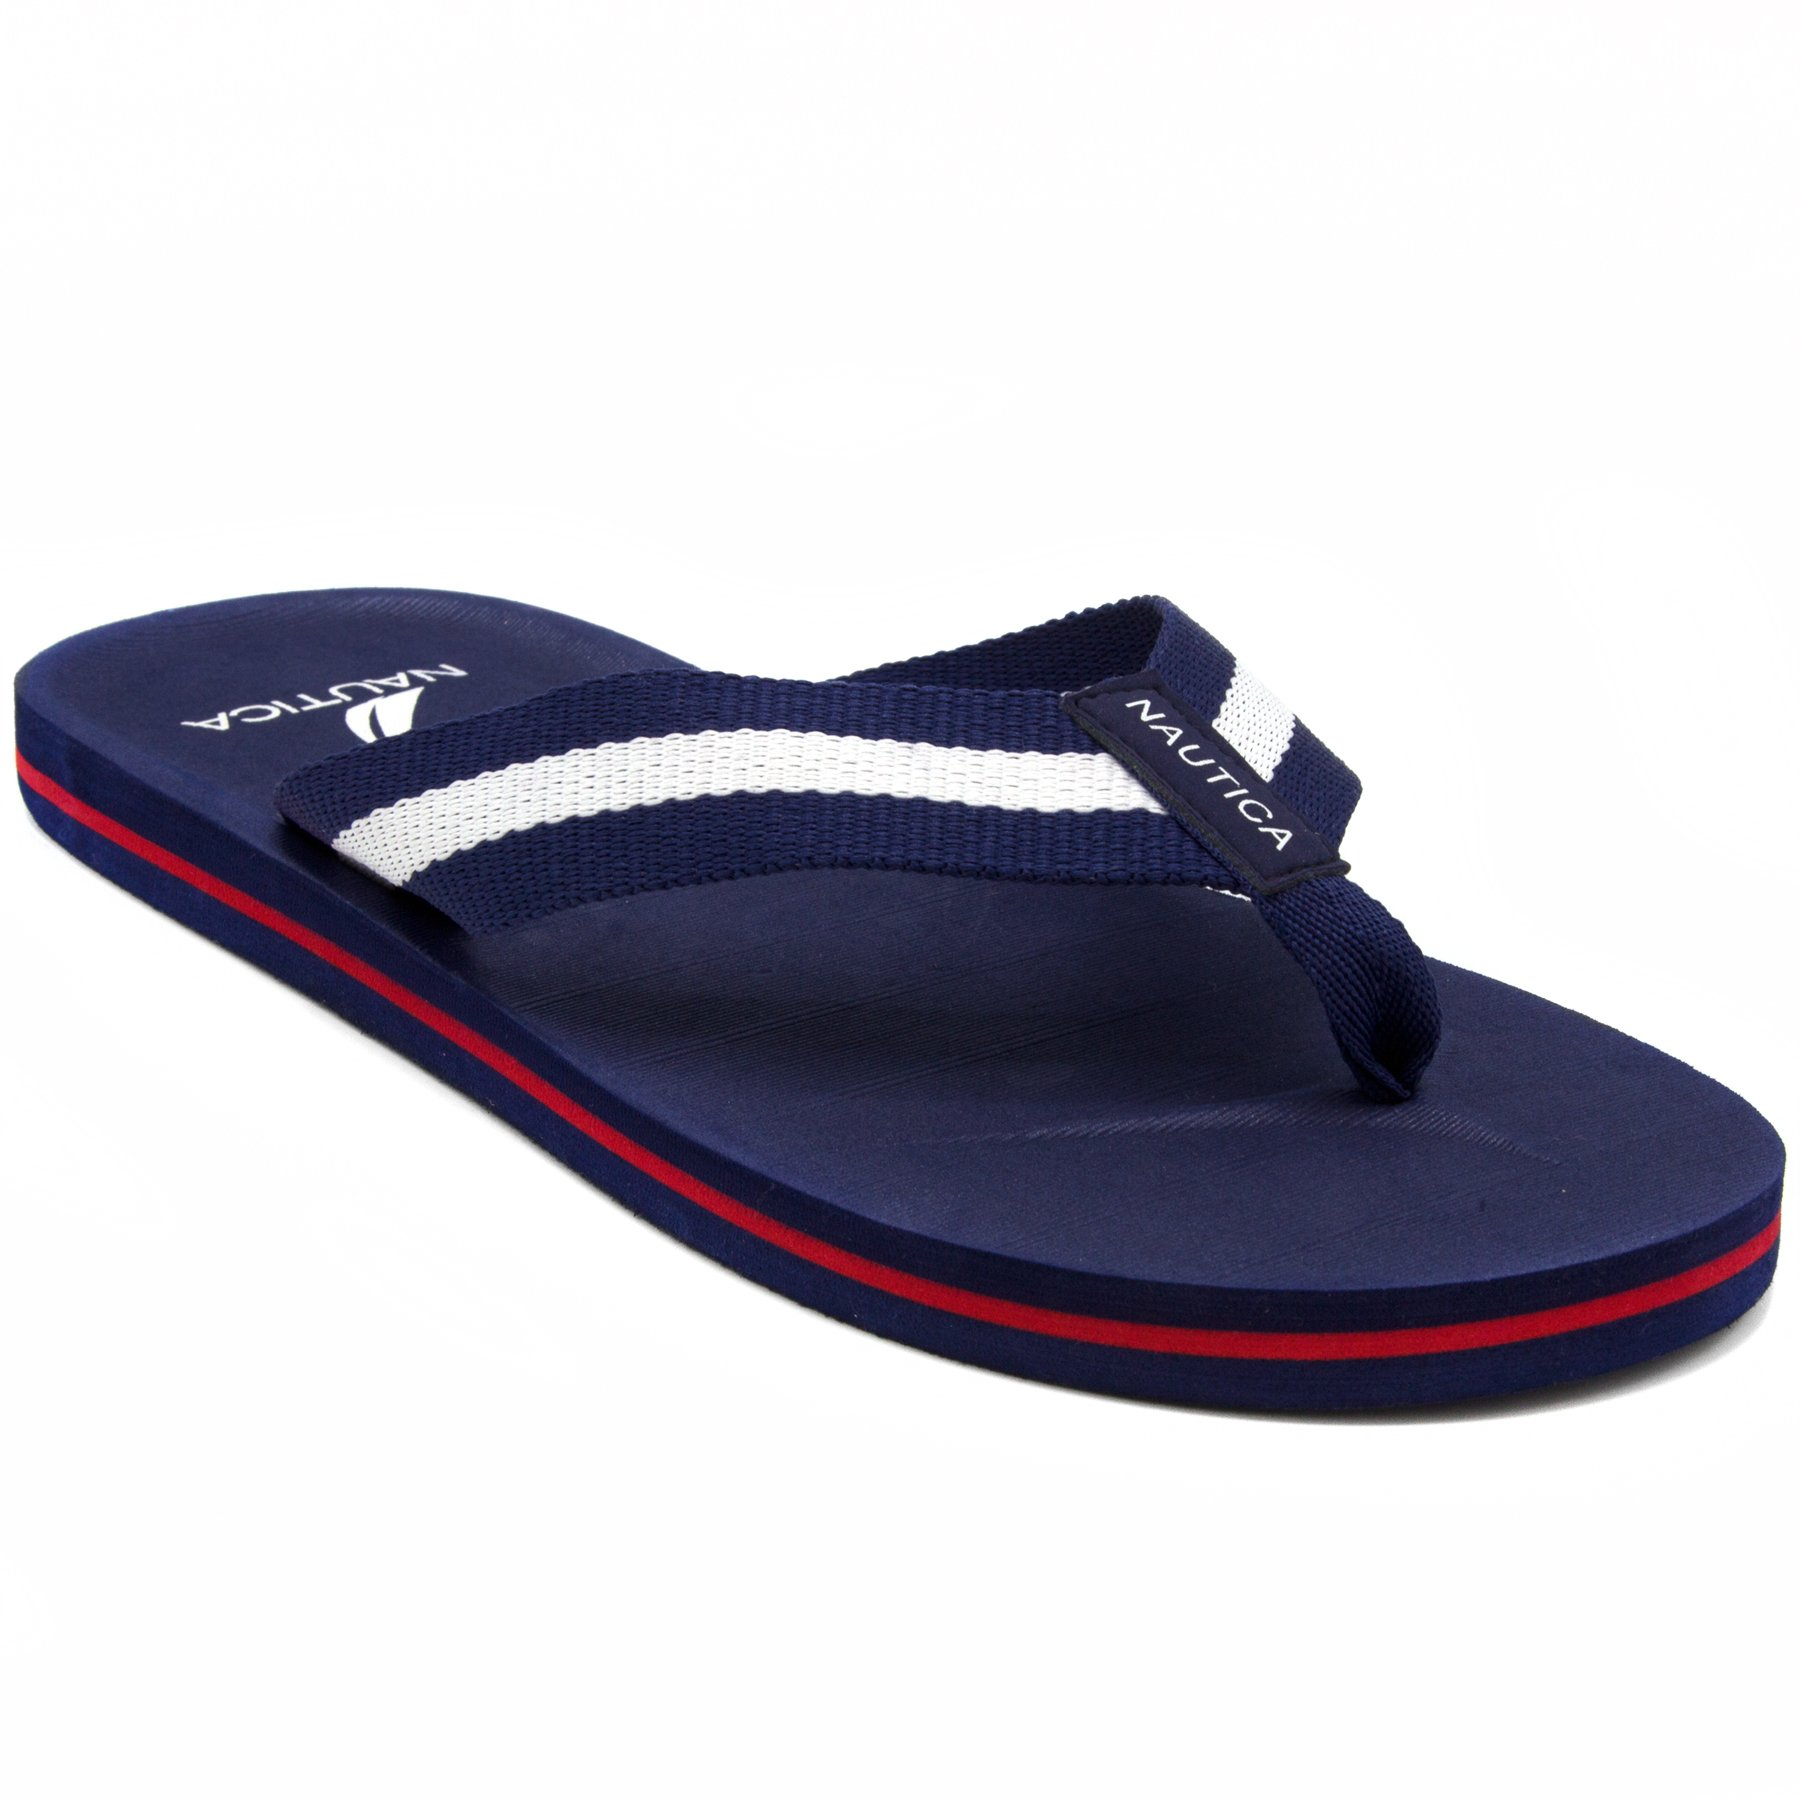 Nautica Men's Footrope Flip Flop, Beach Sandal, Boat Slide-Red-11